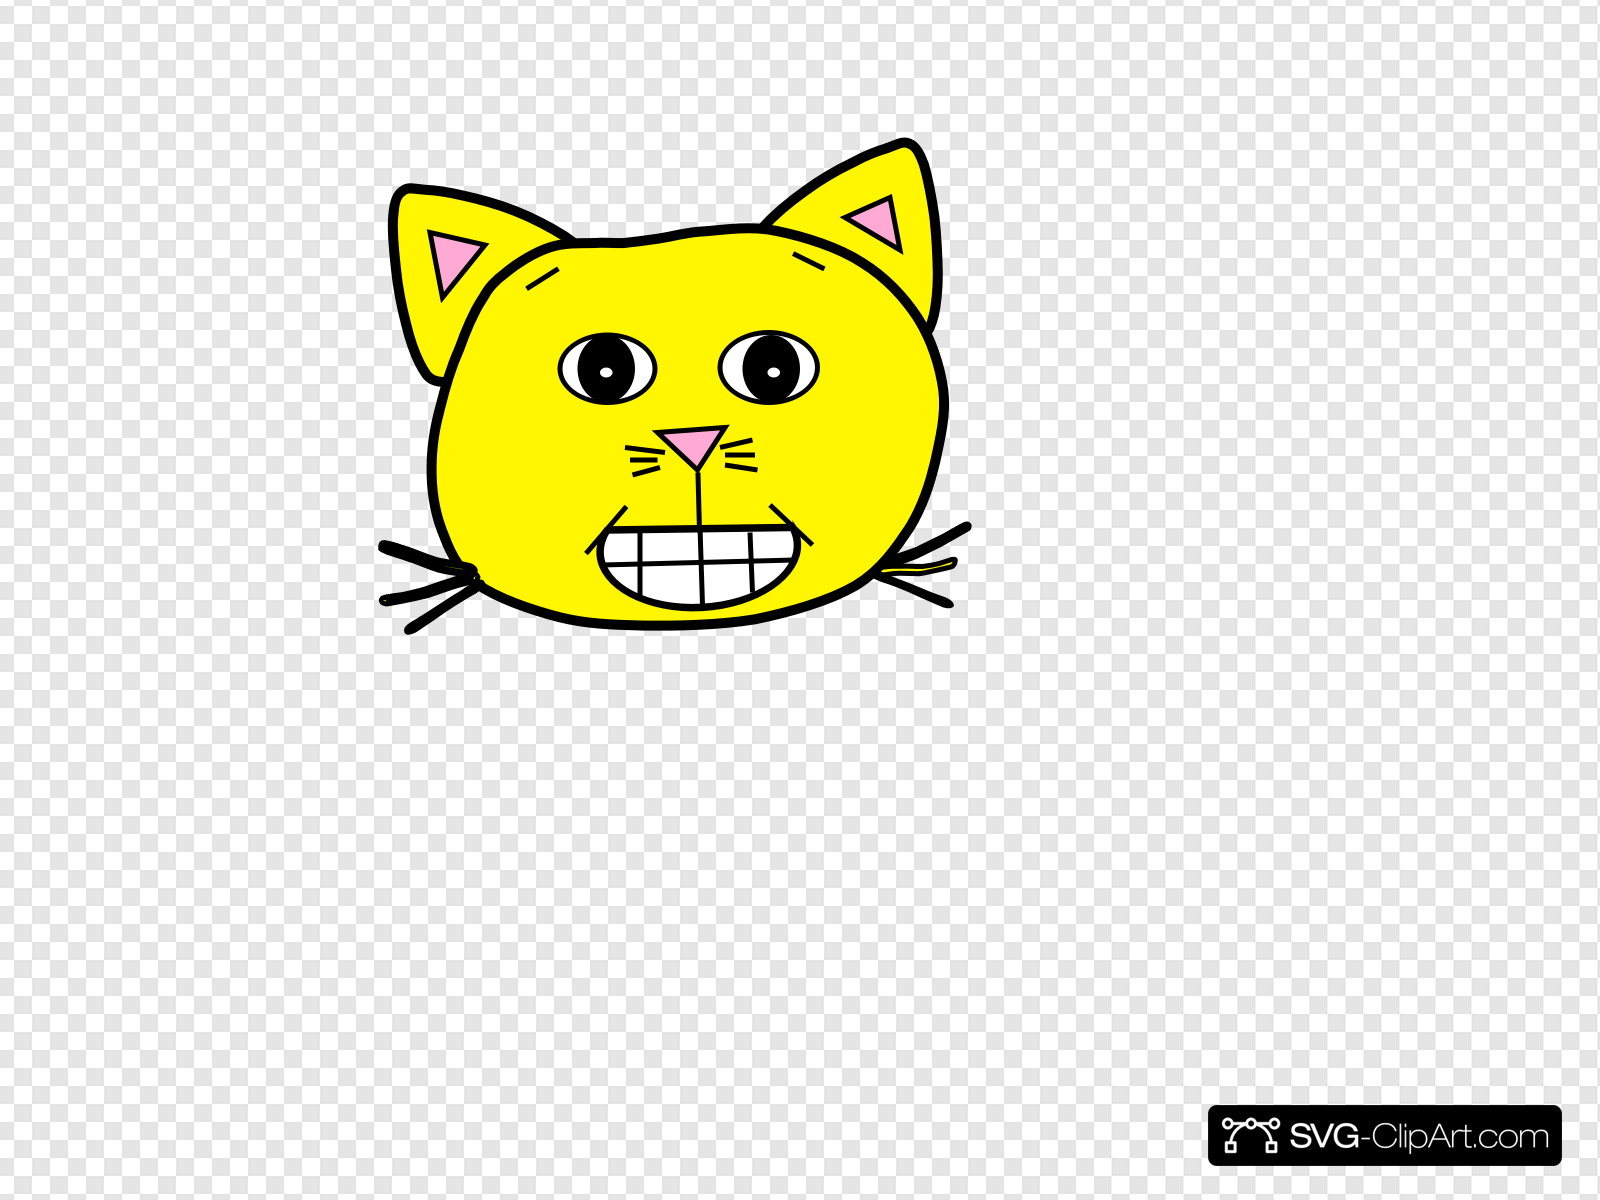 Ecstatic Yellow Clip art, Icon and SVG.